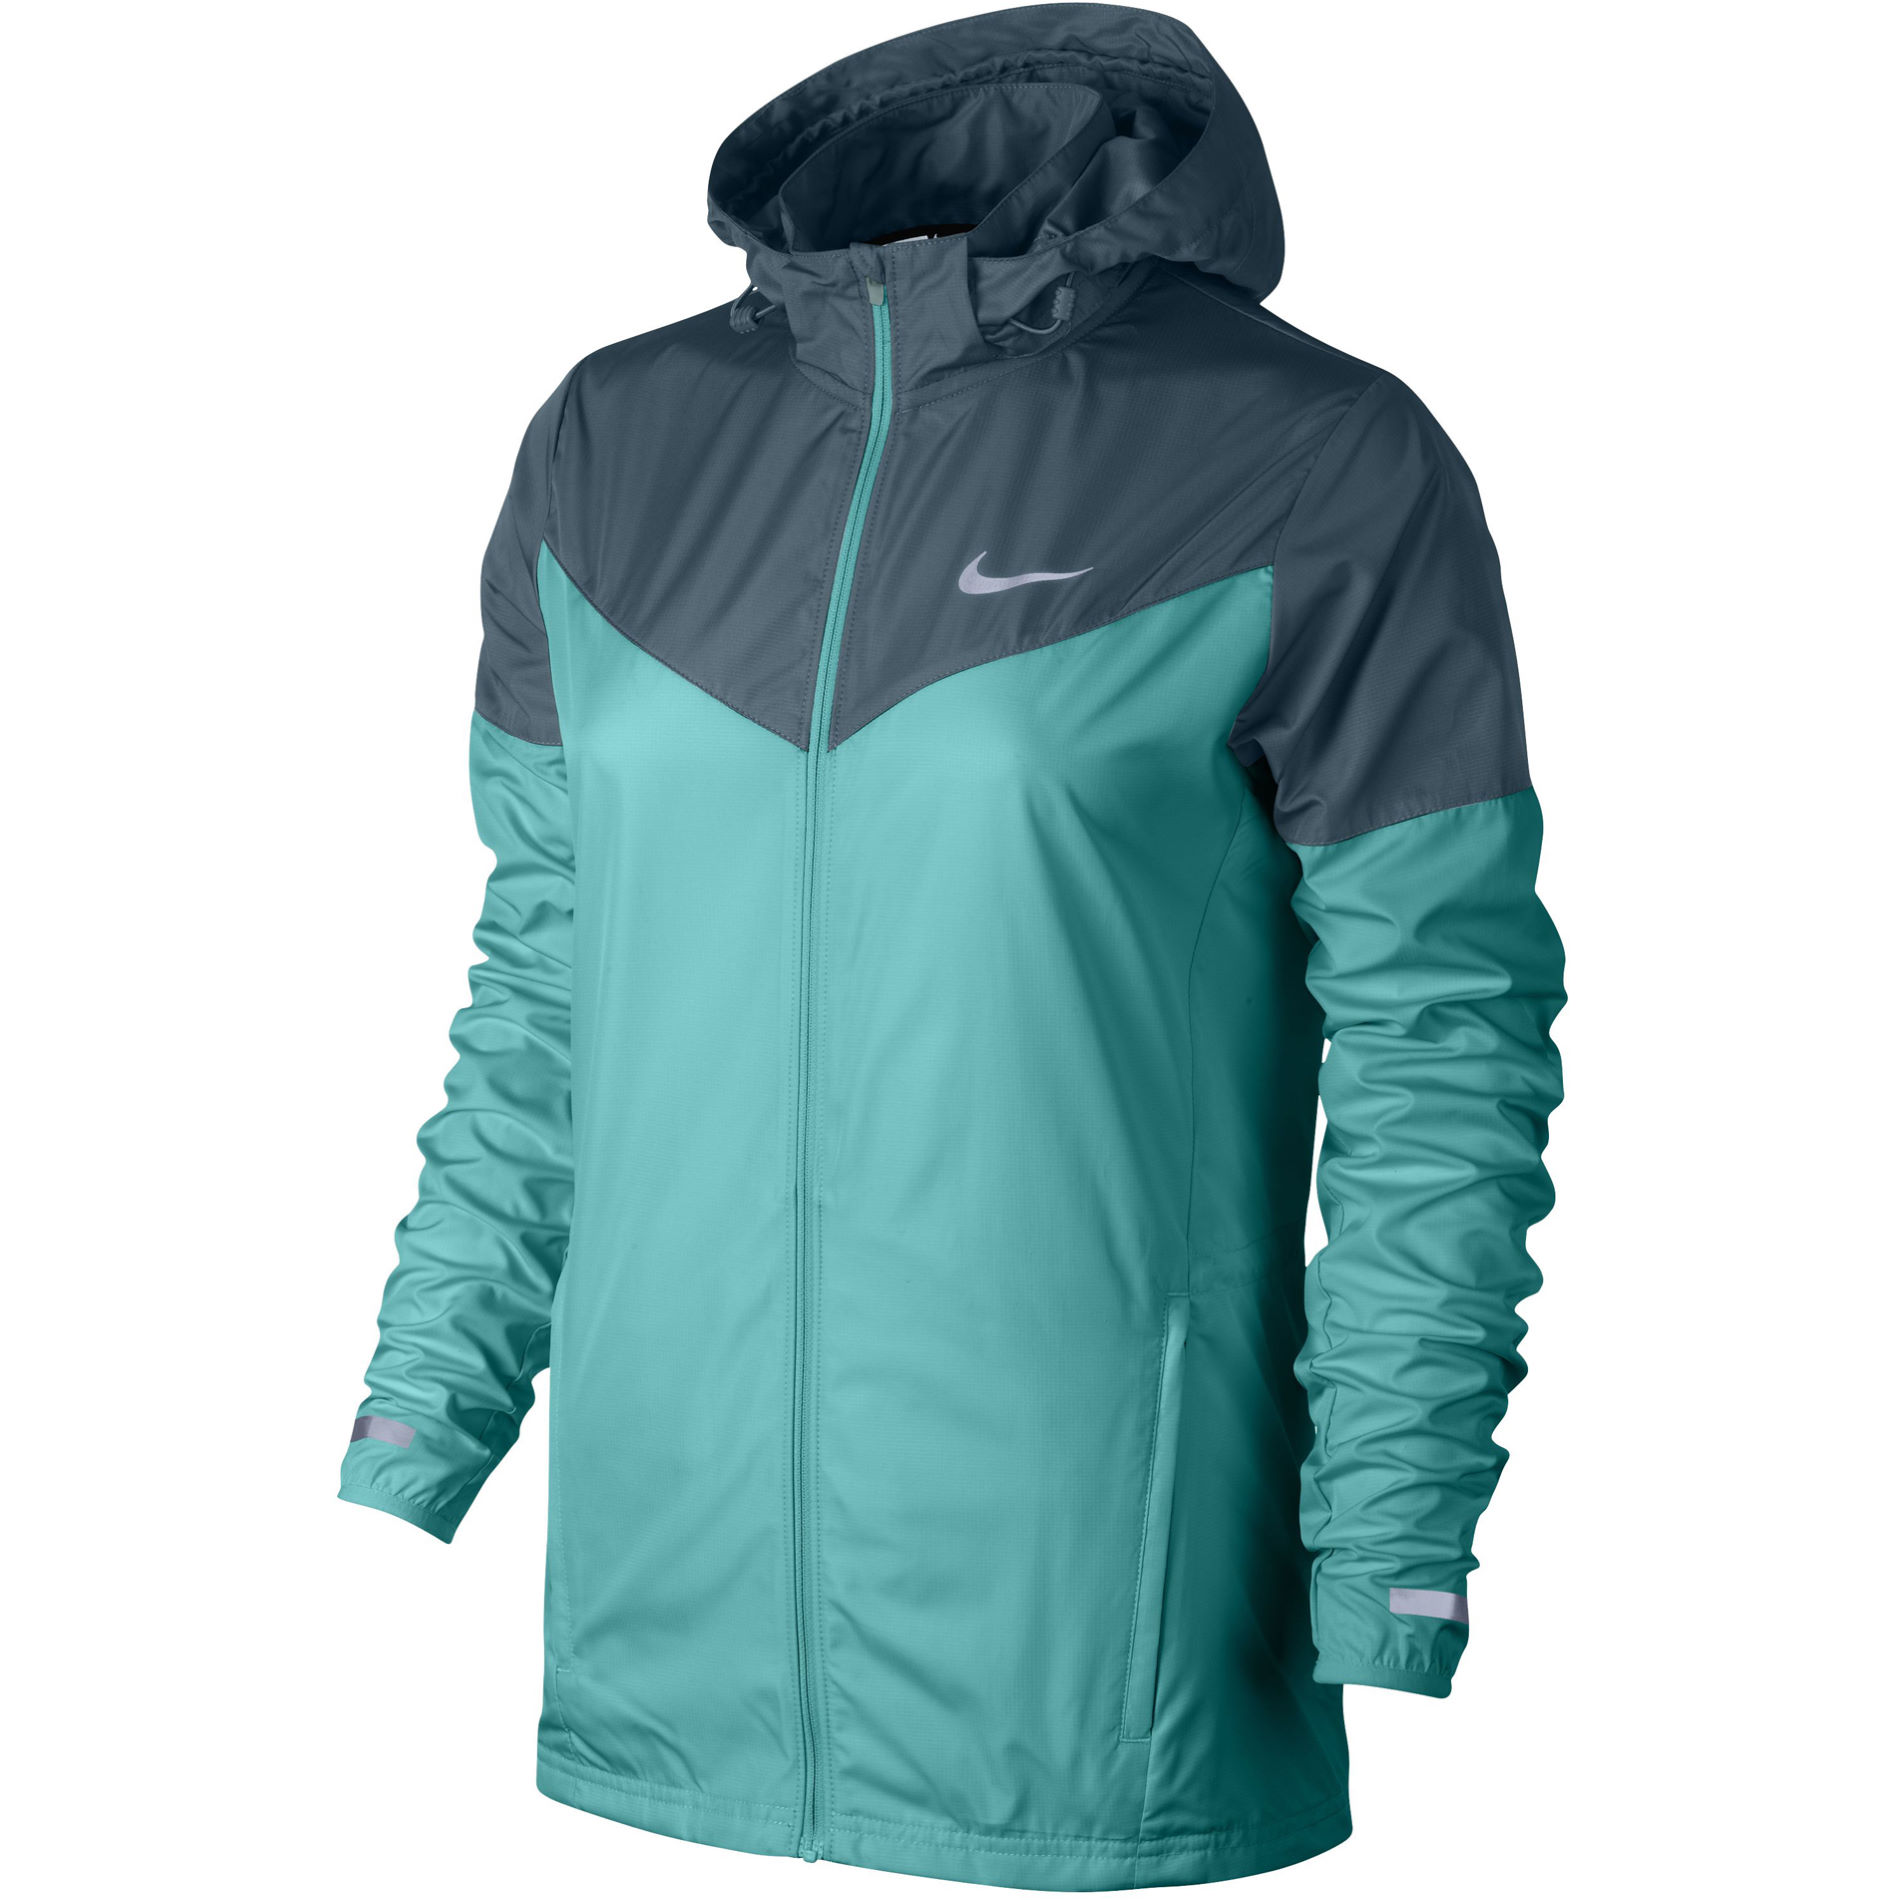 Nike running jackets for women